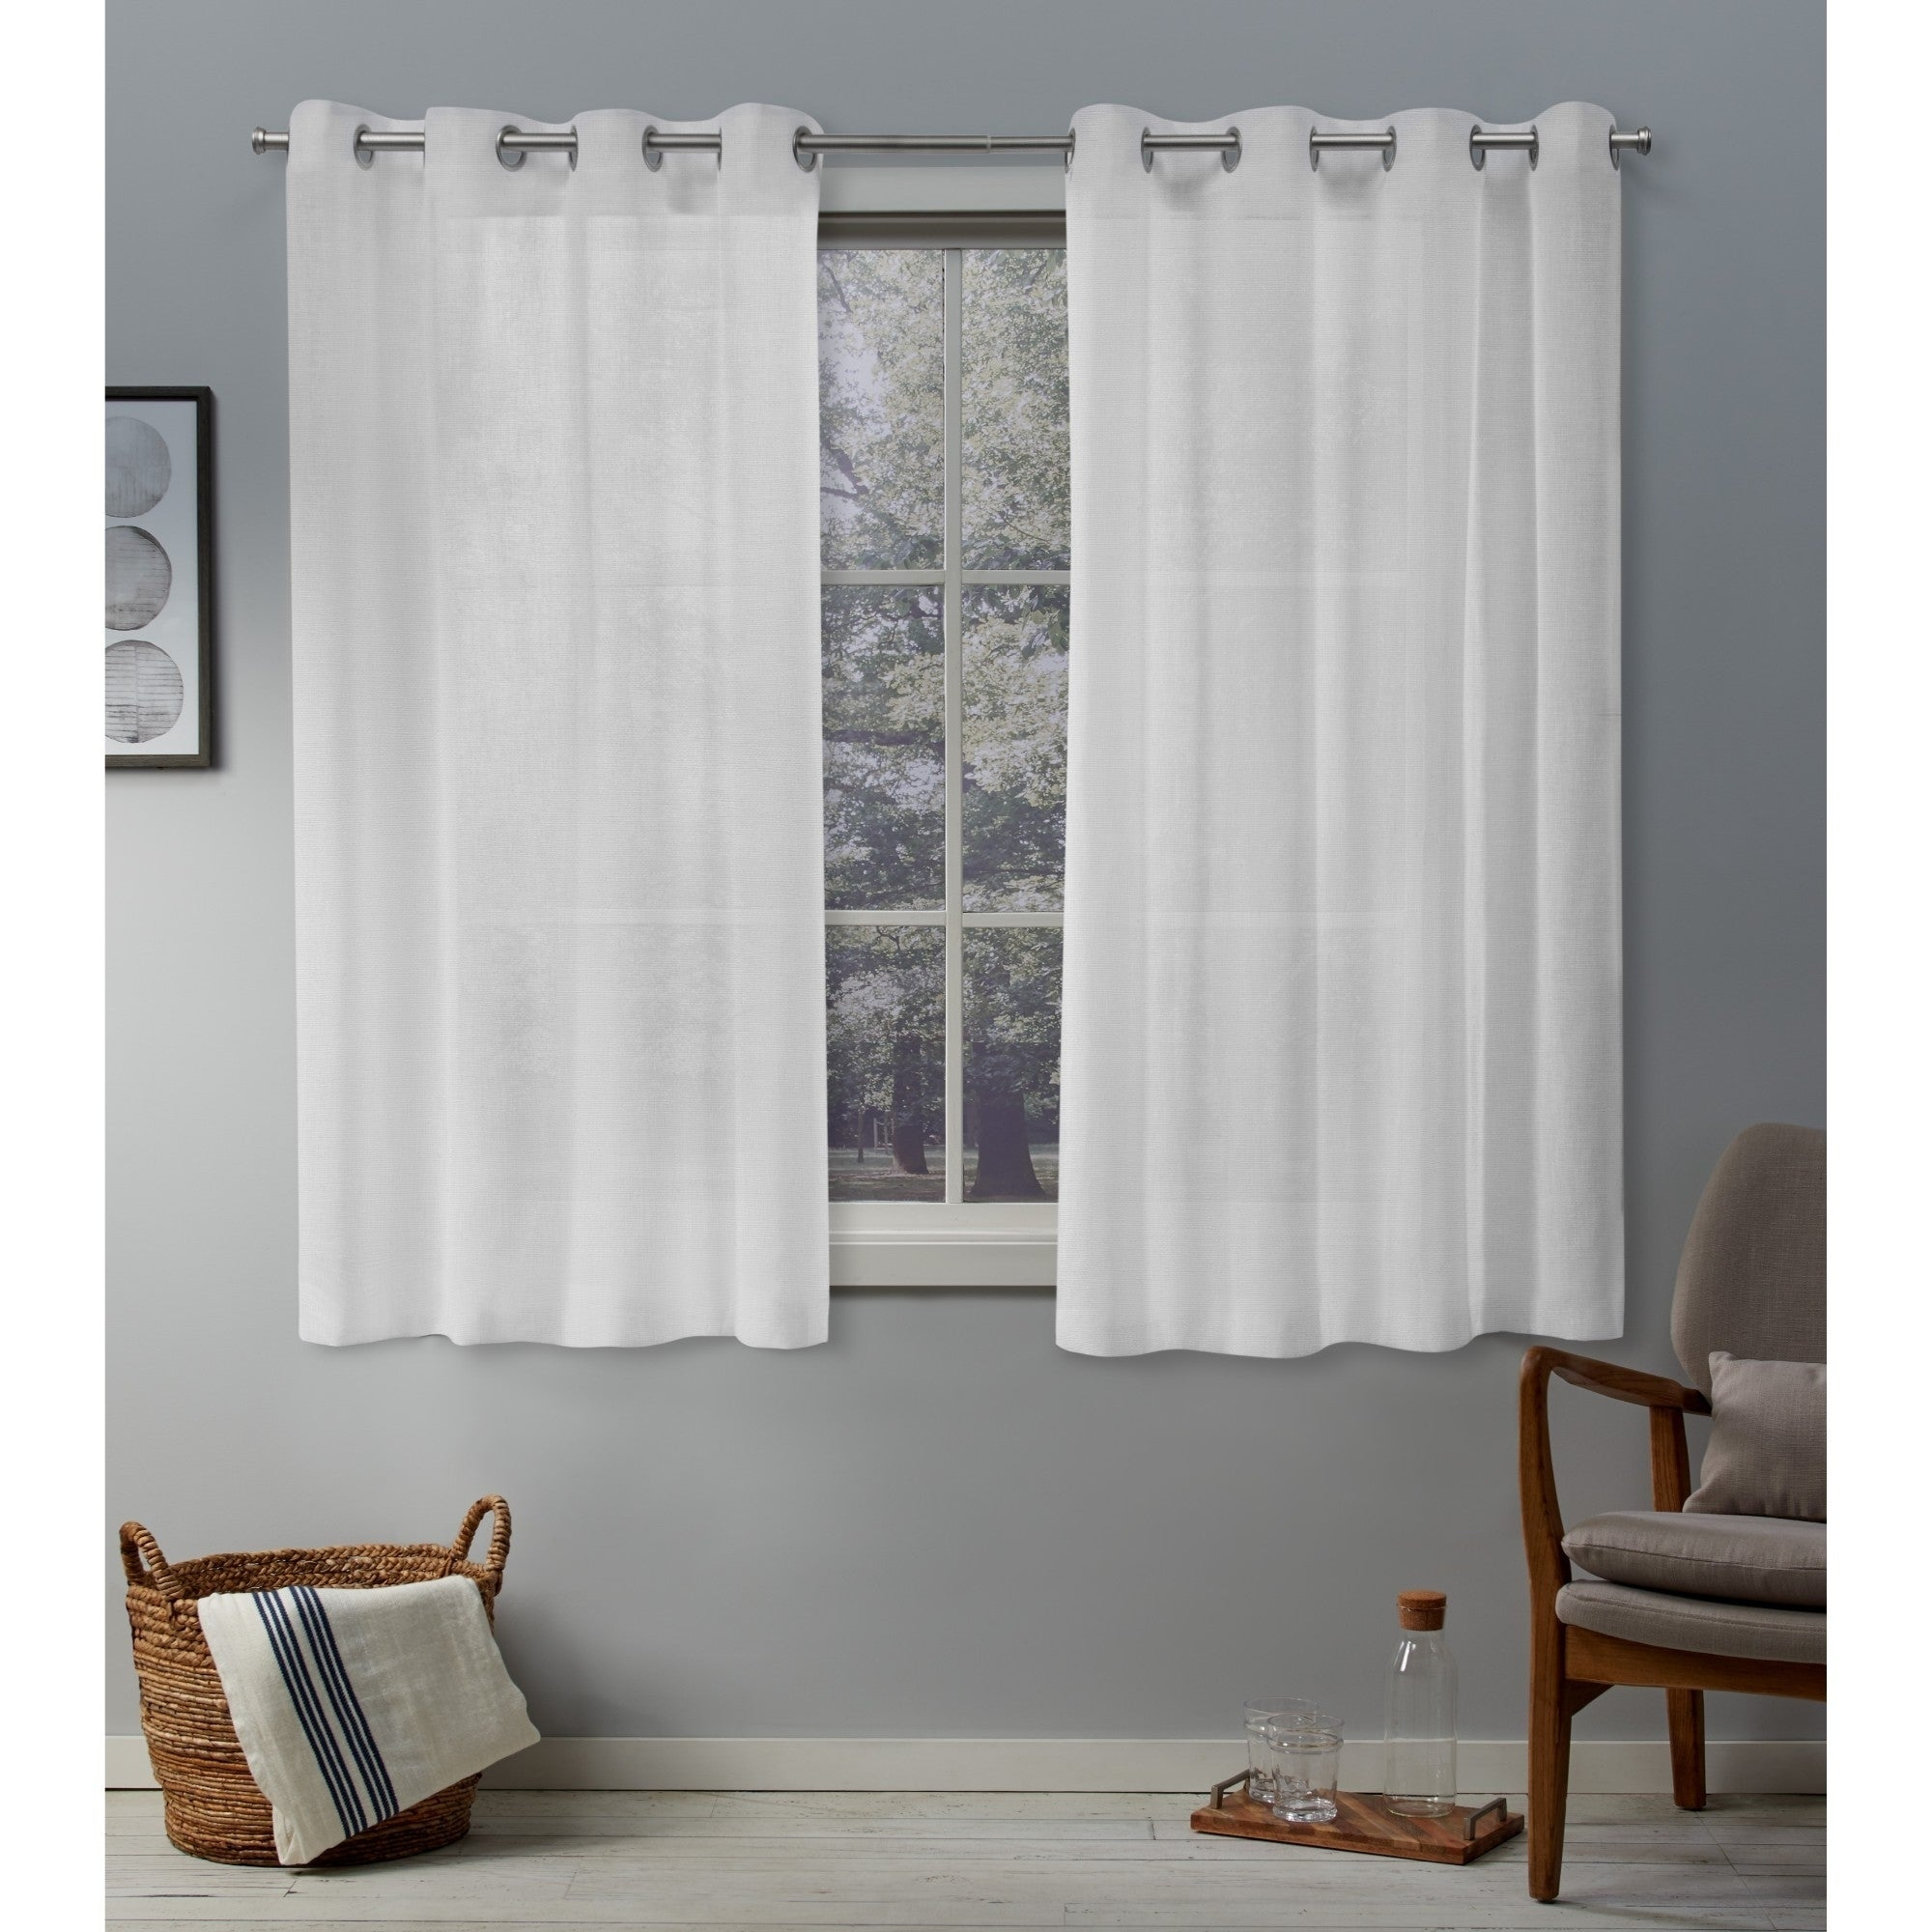 Porch & Den Anfield Sheer Grommet Top Curtain Panel Pair Intended For Penny Sheer Grommet Top Curtain Panel Pairs (View 18 of 20)